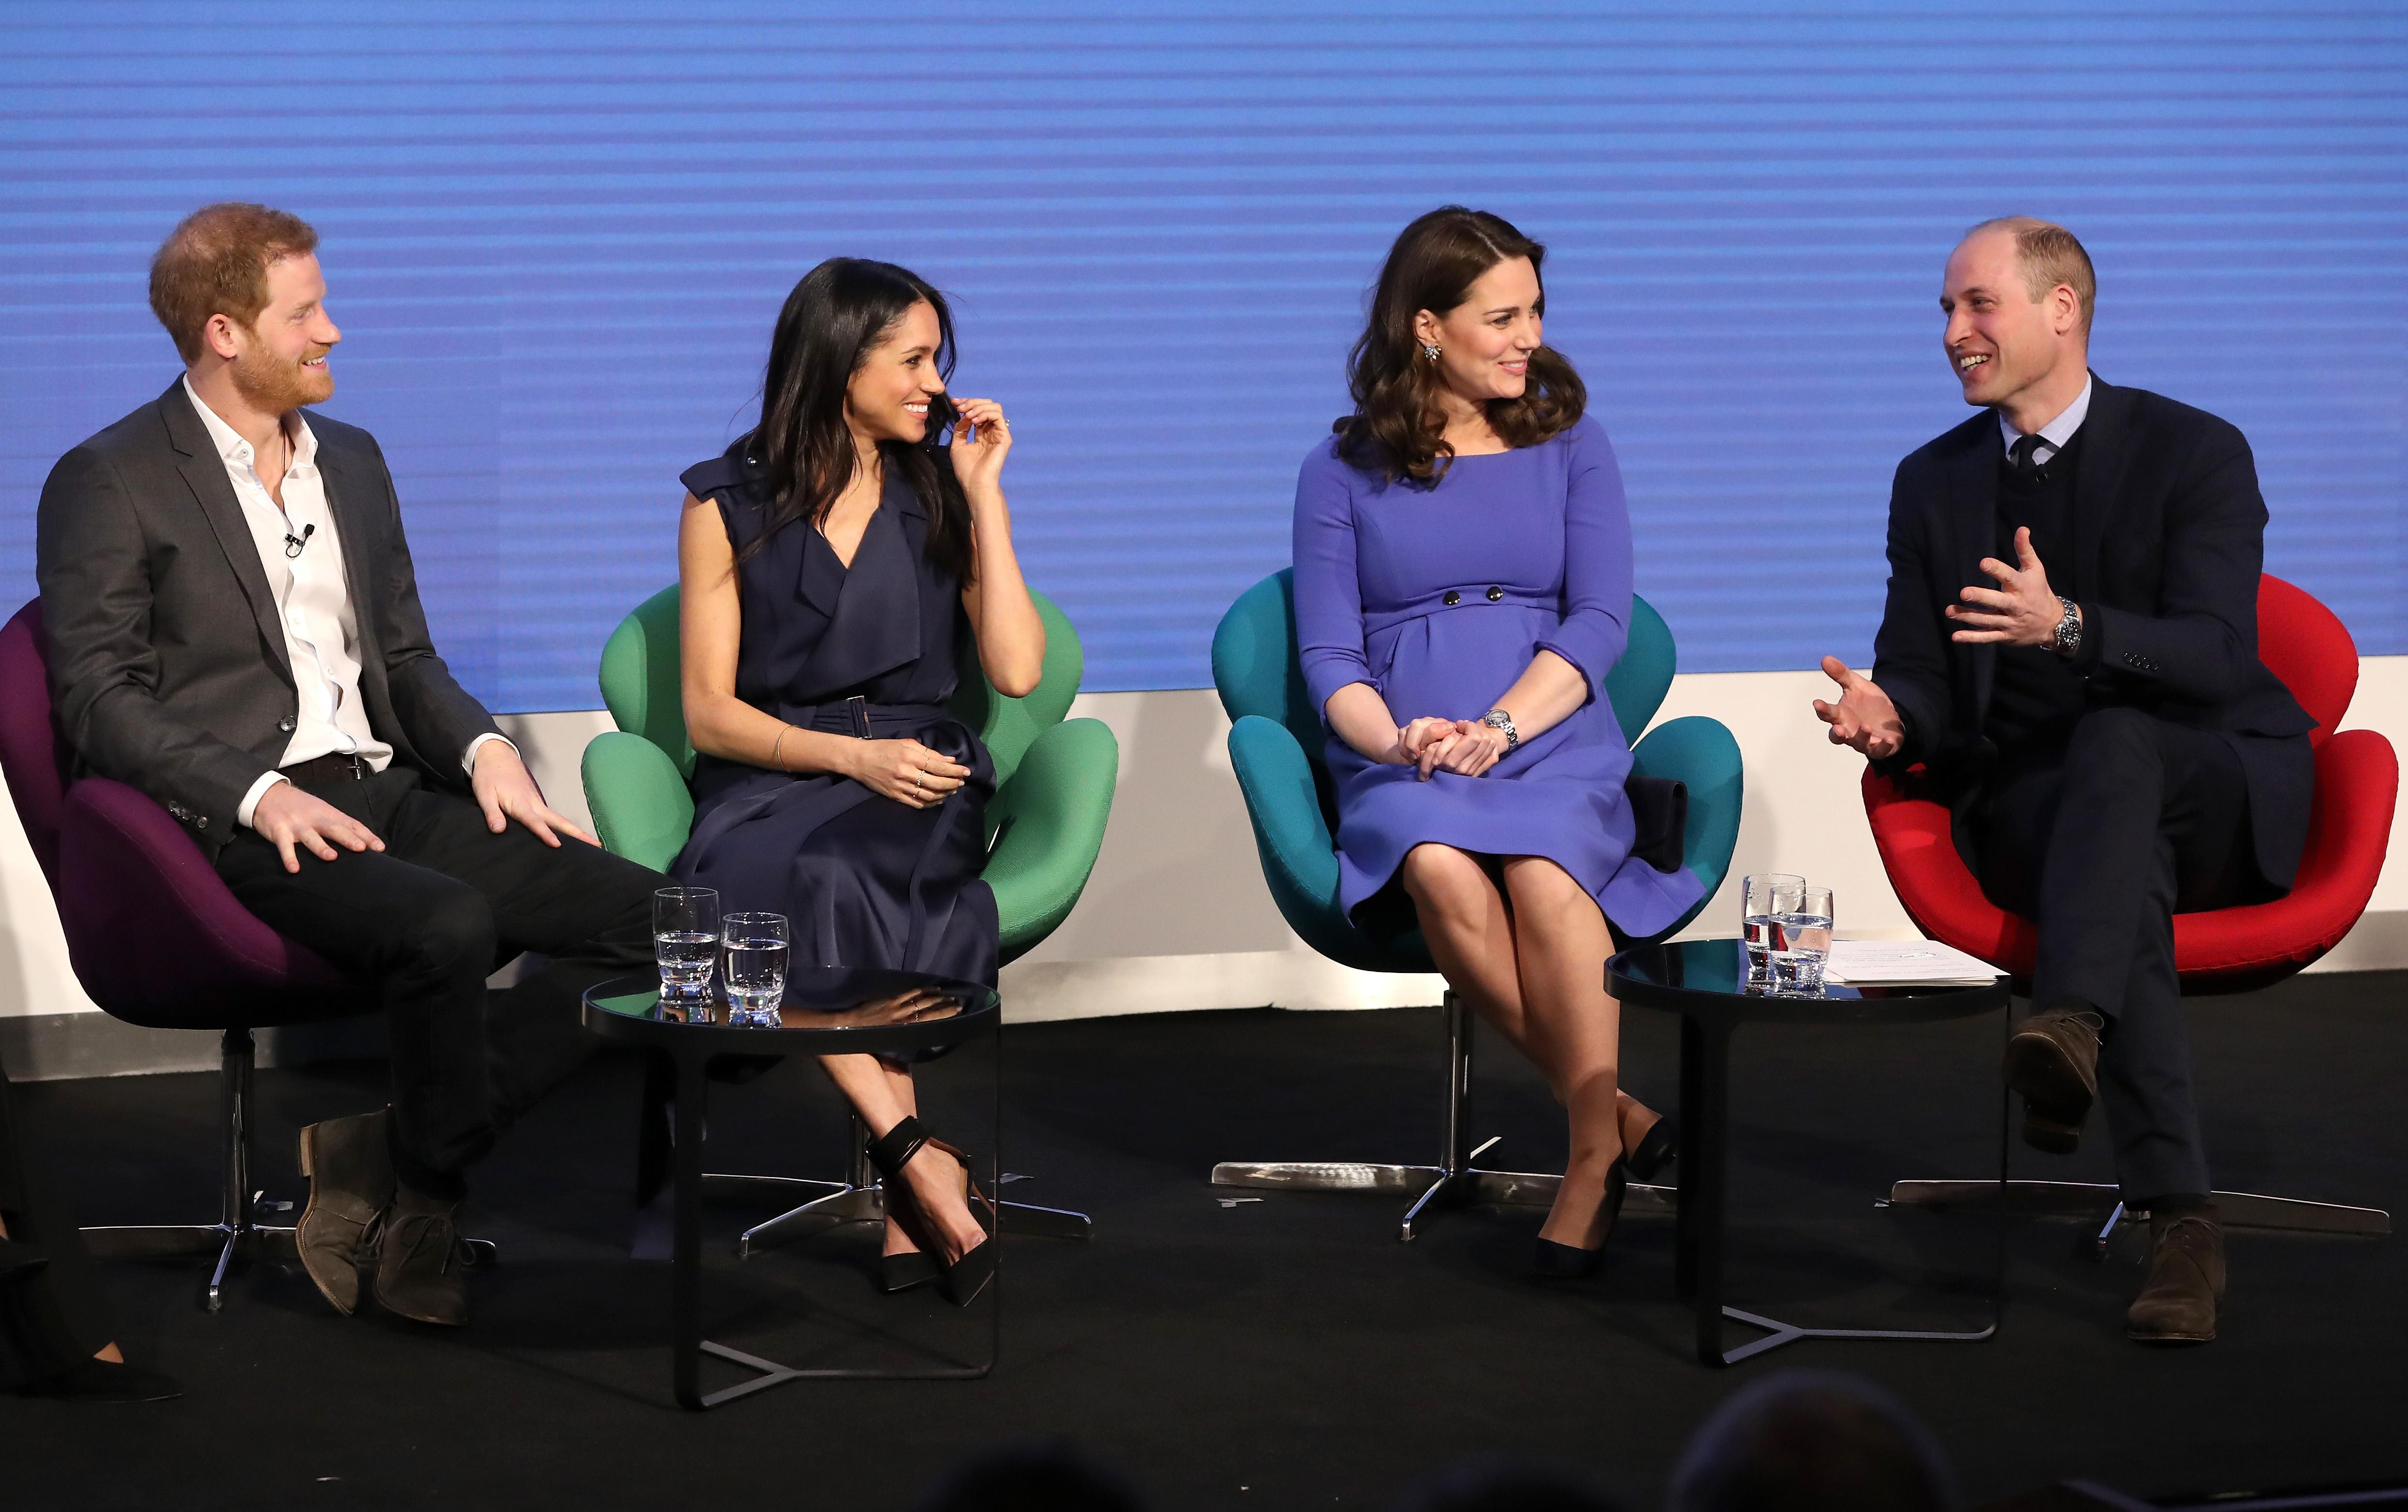 (L-R) Britain's Prince Harry, his fiancee US actress Meghan Markle, Britain's Catherine, Duchess of Cambridge and Britain's Prince William, Duke of Cambridge attend the first annual Royal Foundation Forum on February 28, 2018 in London. (Photo by Chris Jackson / POOL / AFP) (Photo credit should read CHRIS JACKSON/AFP/Getty Images)